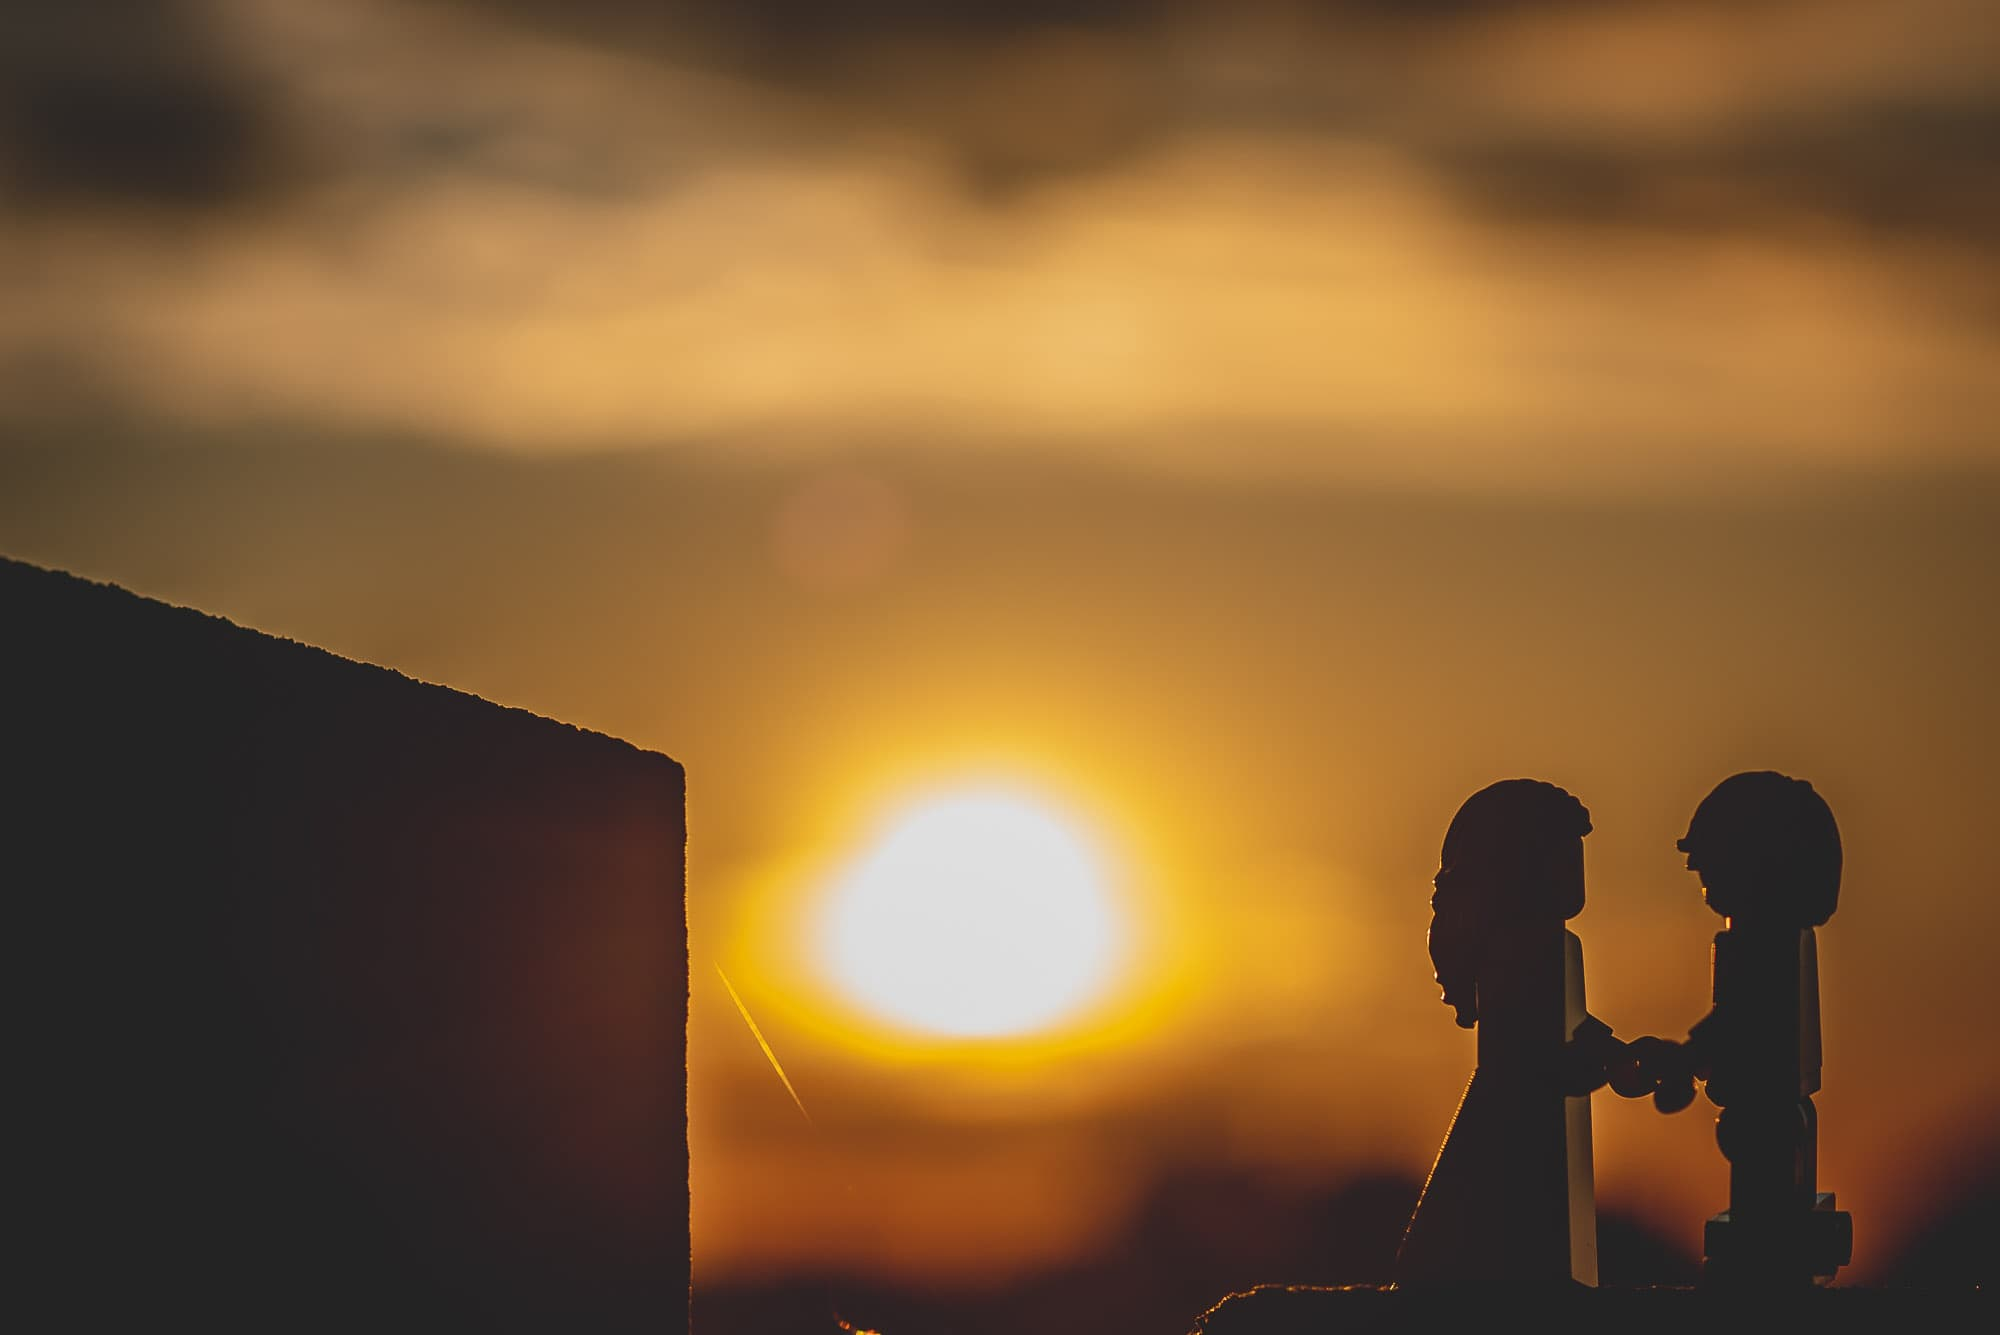 Lego Bride and Groom in Silhouette at Sunset